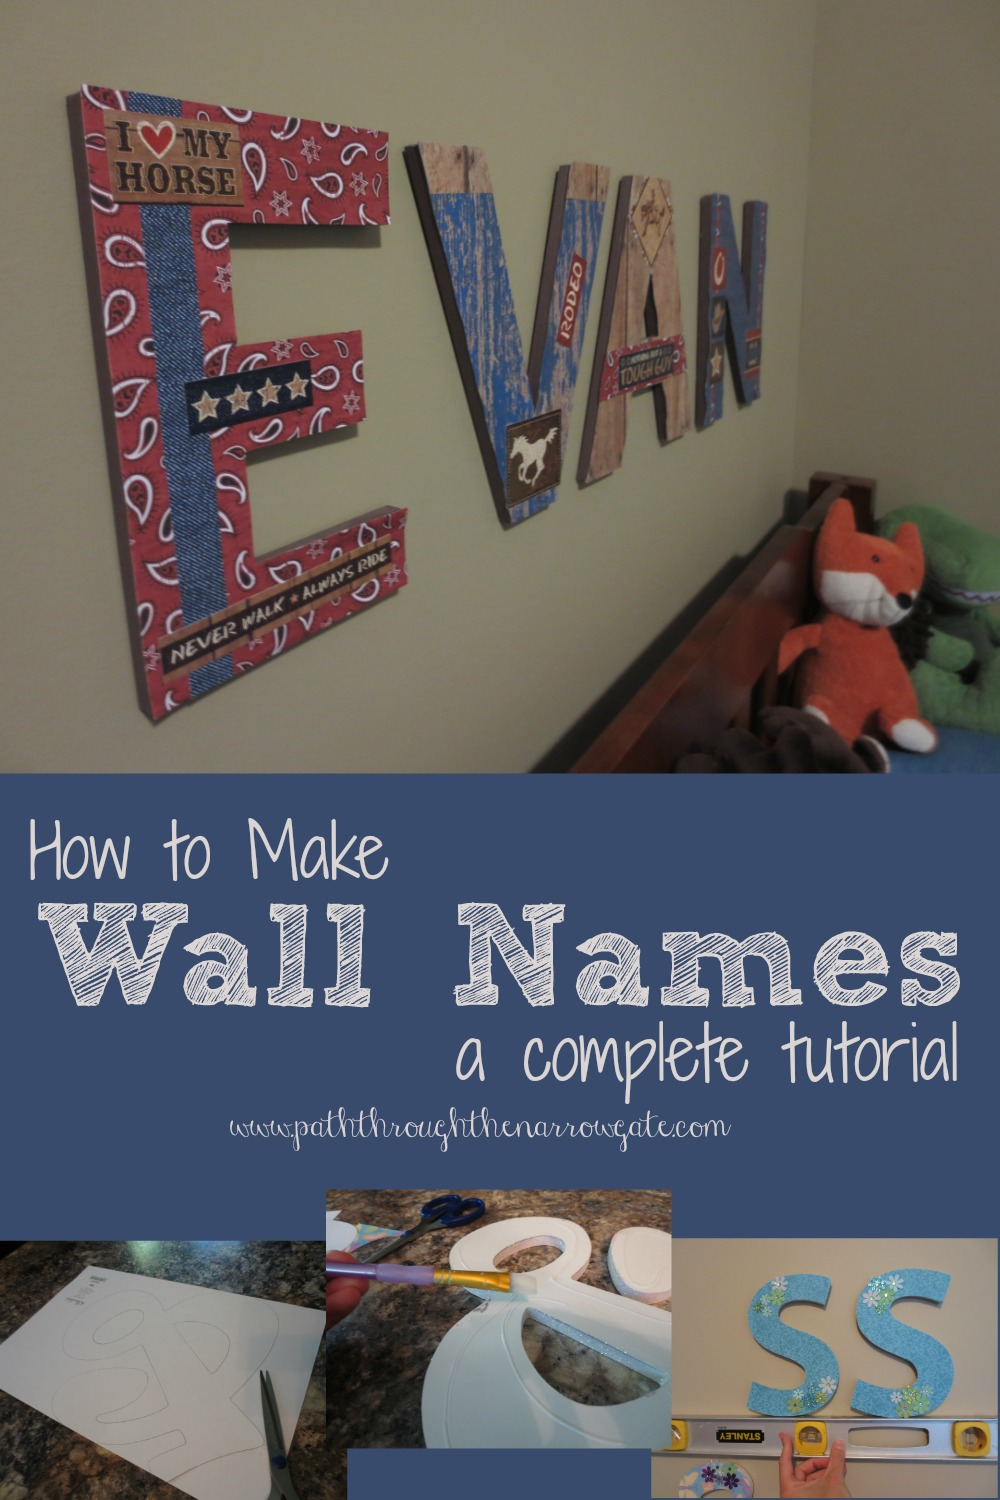 These wall letters would also be great for wedding shower, baby shower, or classroom decorations.